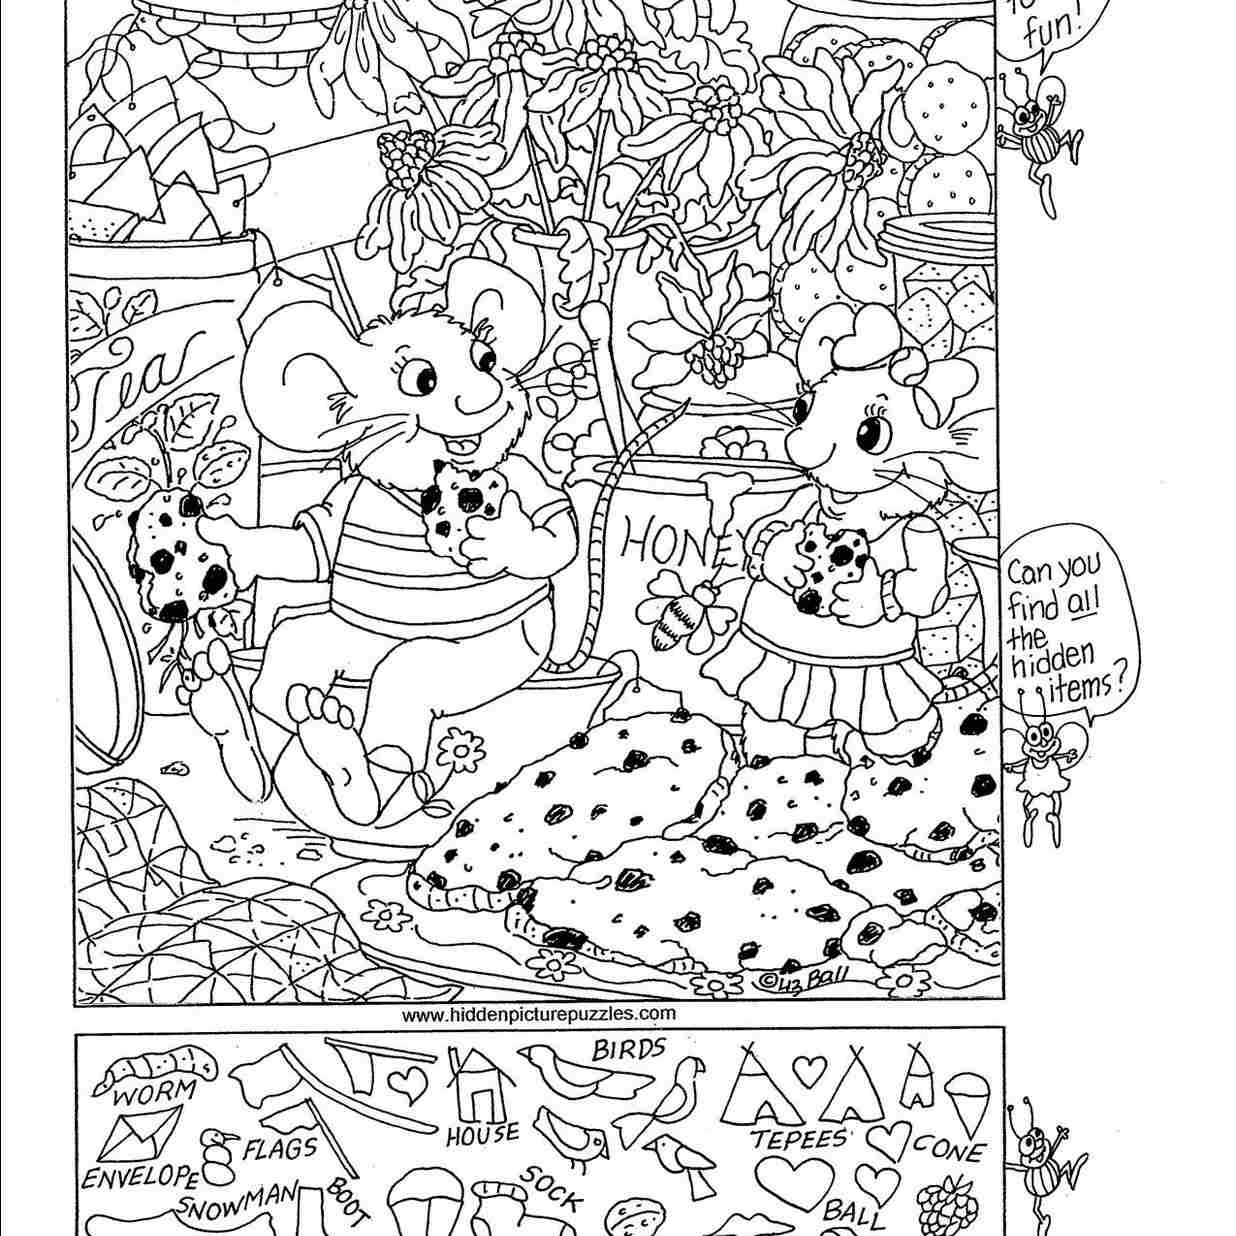 7 Places To Find Free Hidden Picture Puzzles For Kids - Free - Printable Hidden Puzzles